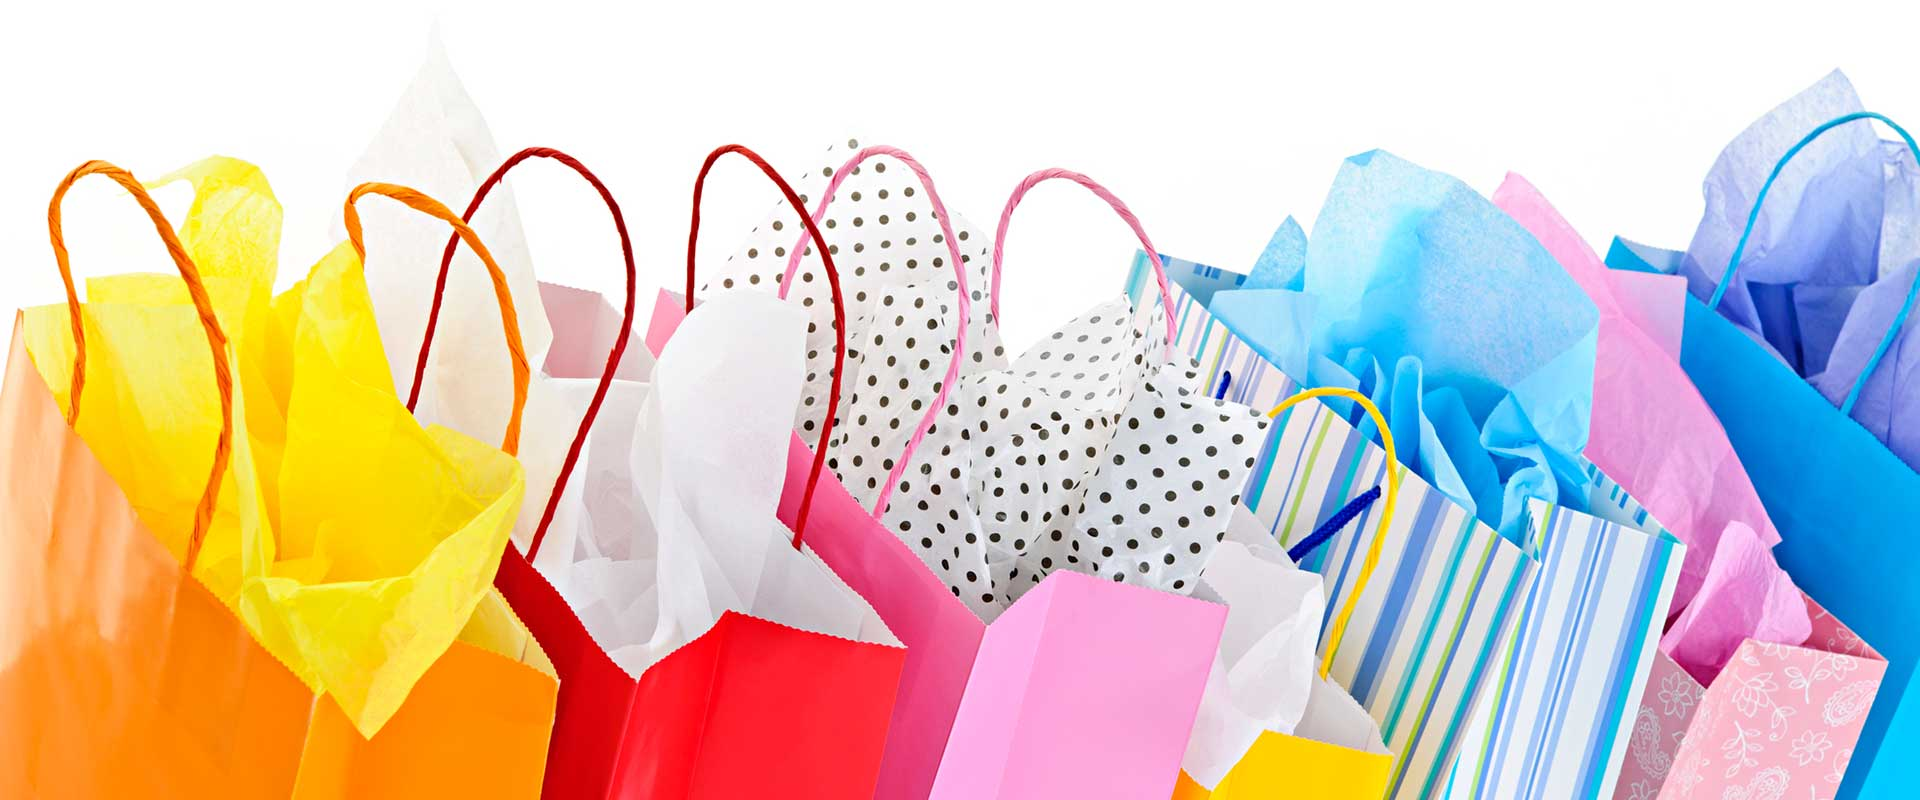 Several gift bags of different colors